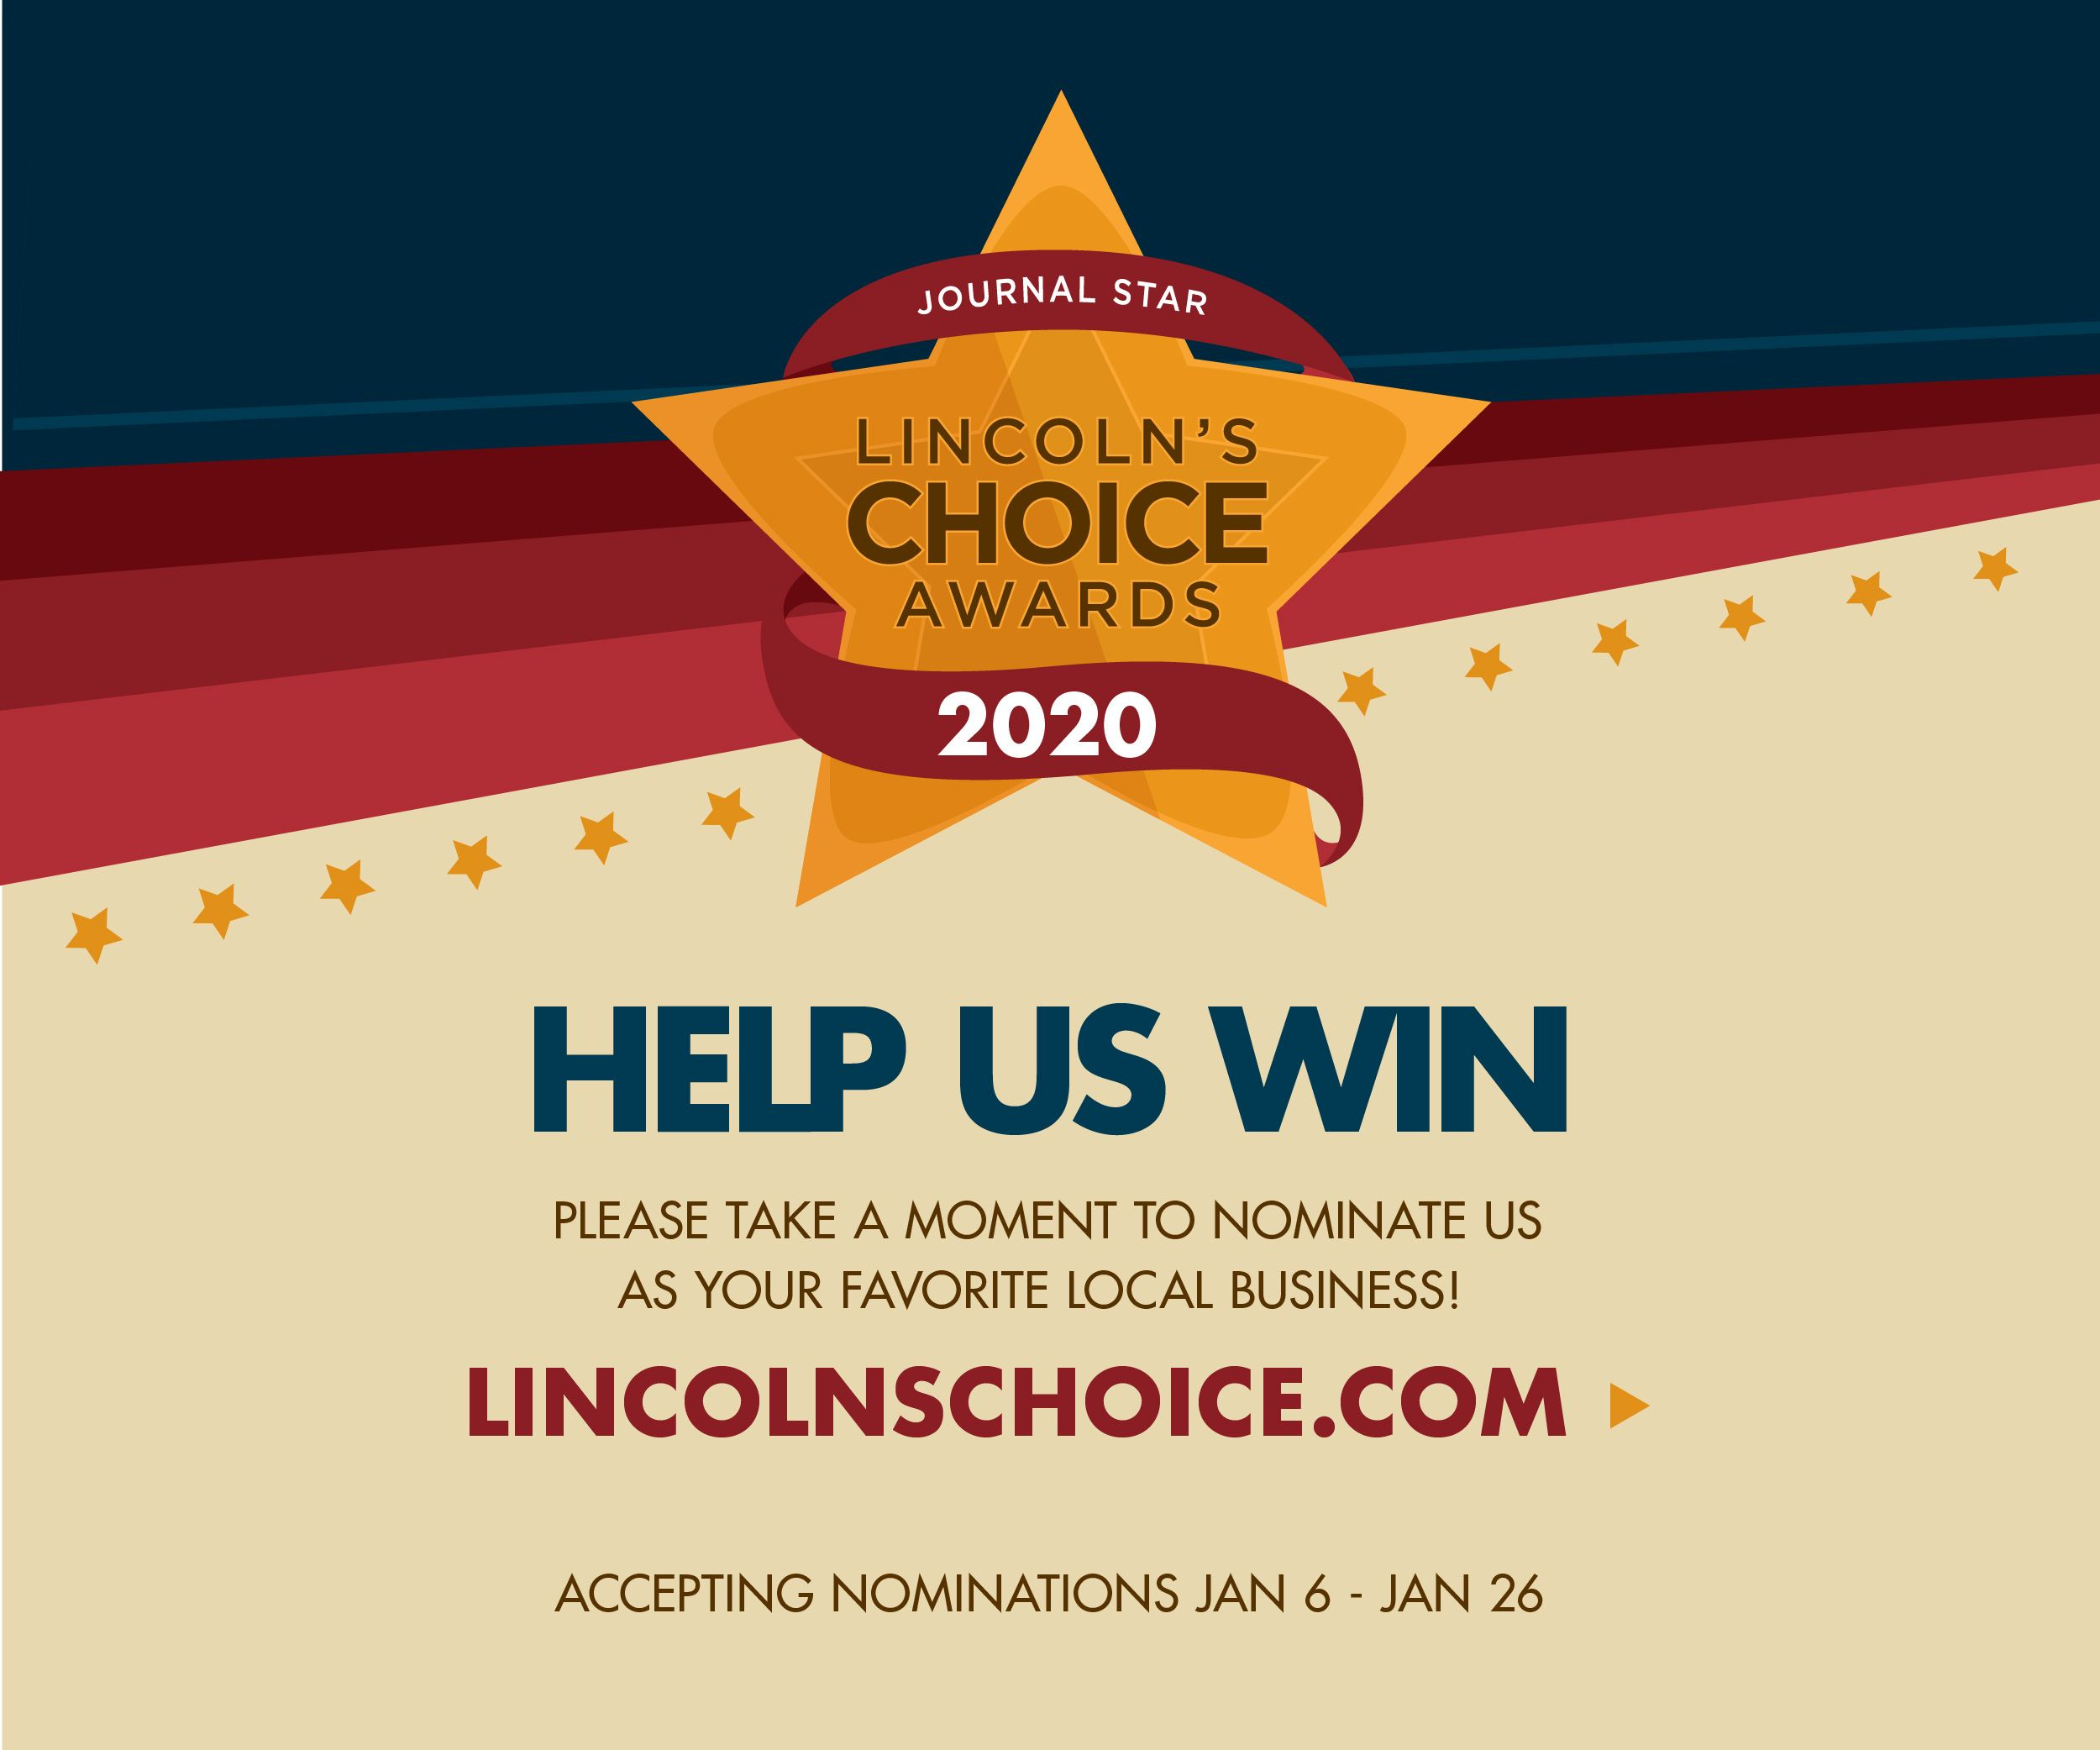 Nominate Tabitha for Lincoln's Choice Awards